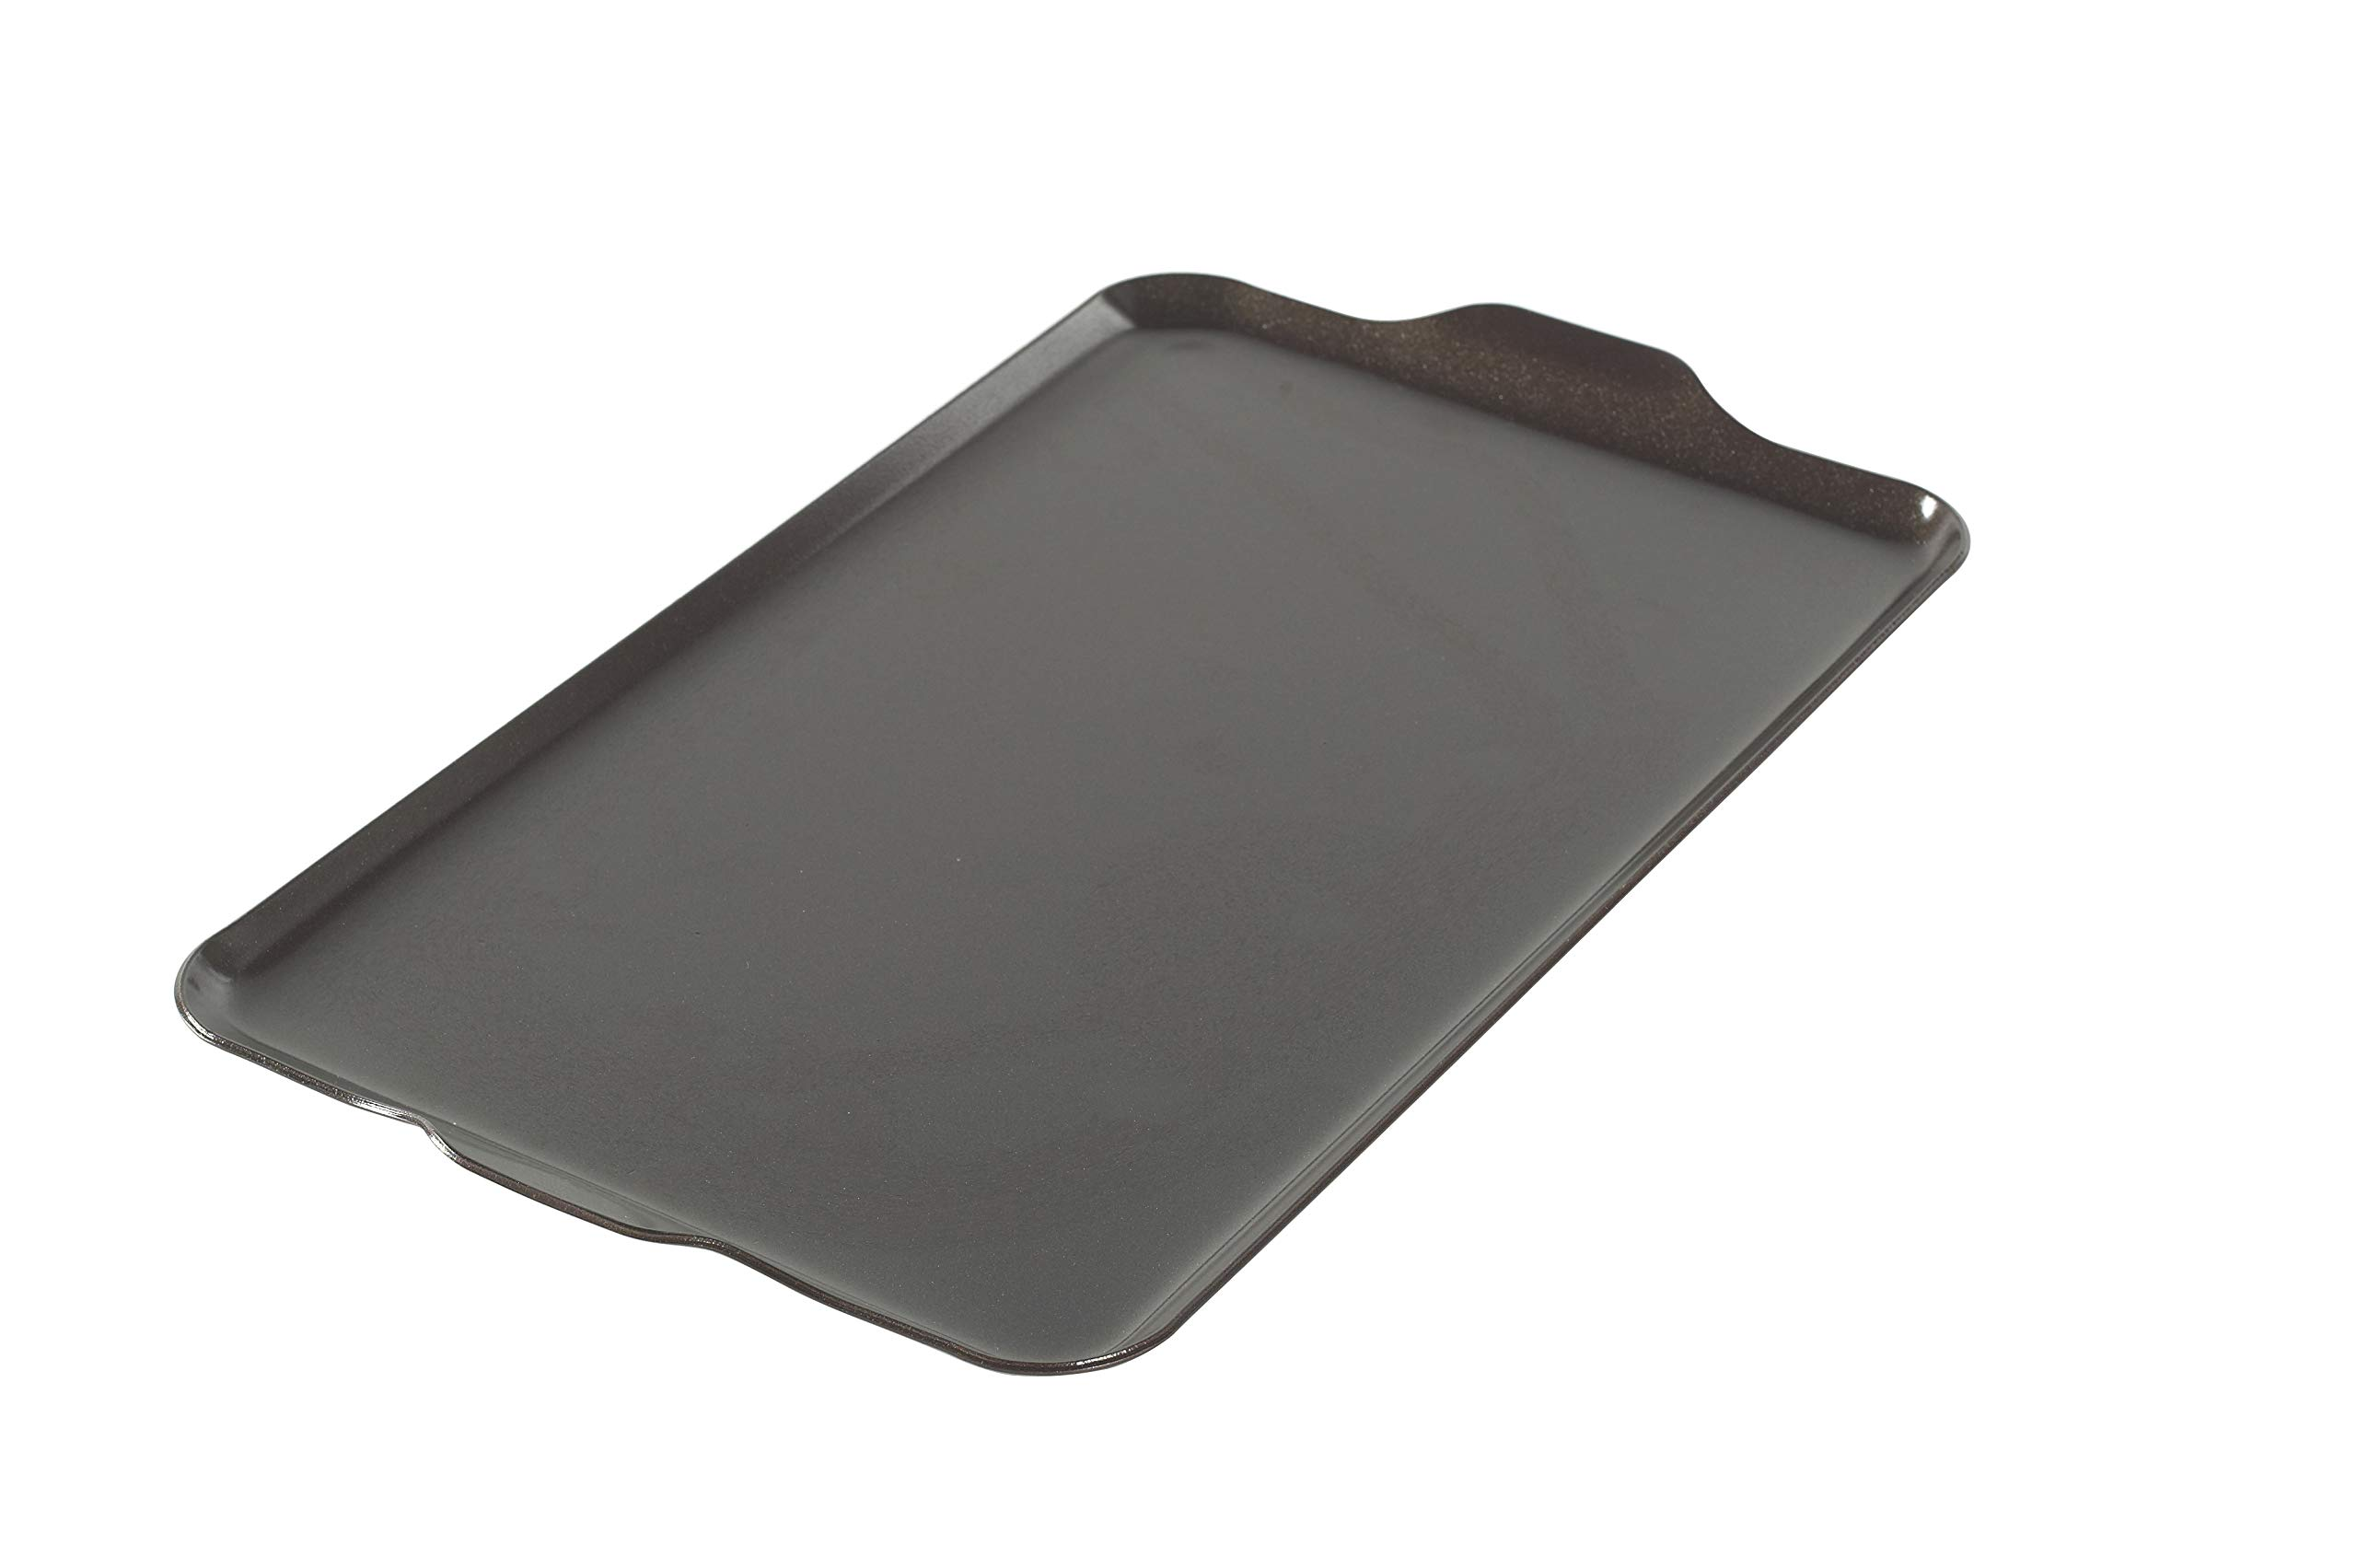 Nordic Ware Two 10230AMZ 2 Burner Griddle 10-1/4-Inch by 17-1/2-Inch, Non-Stick